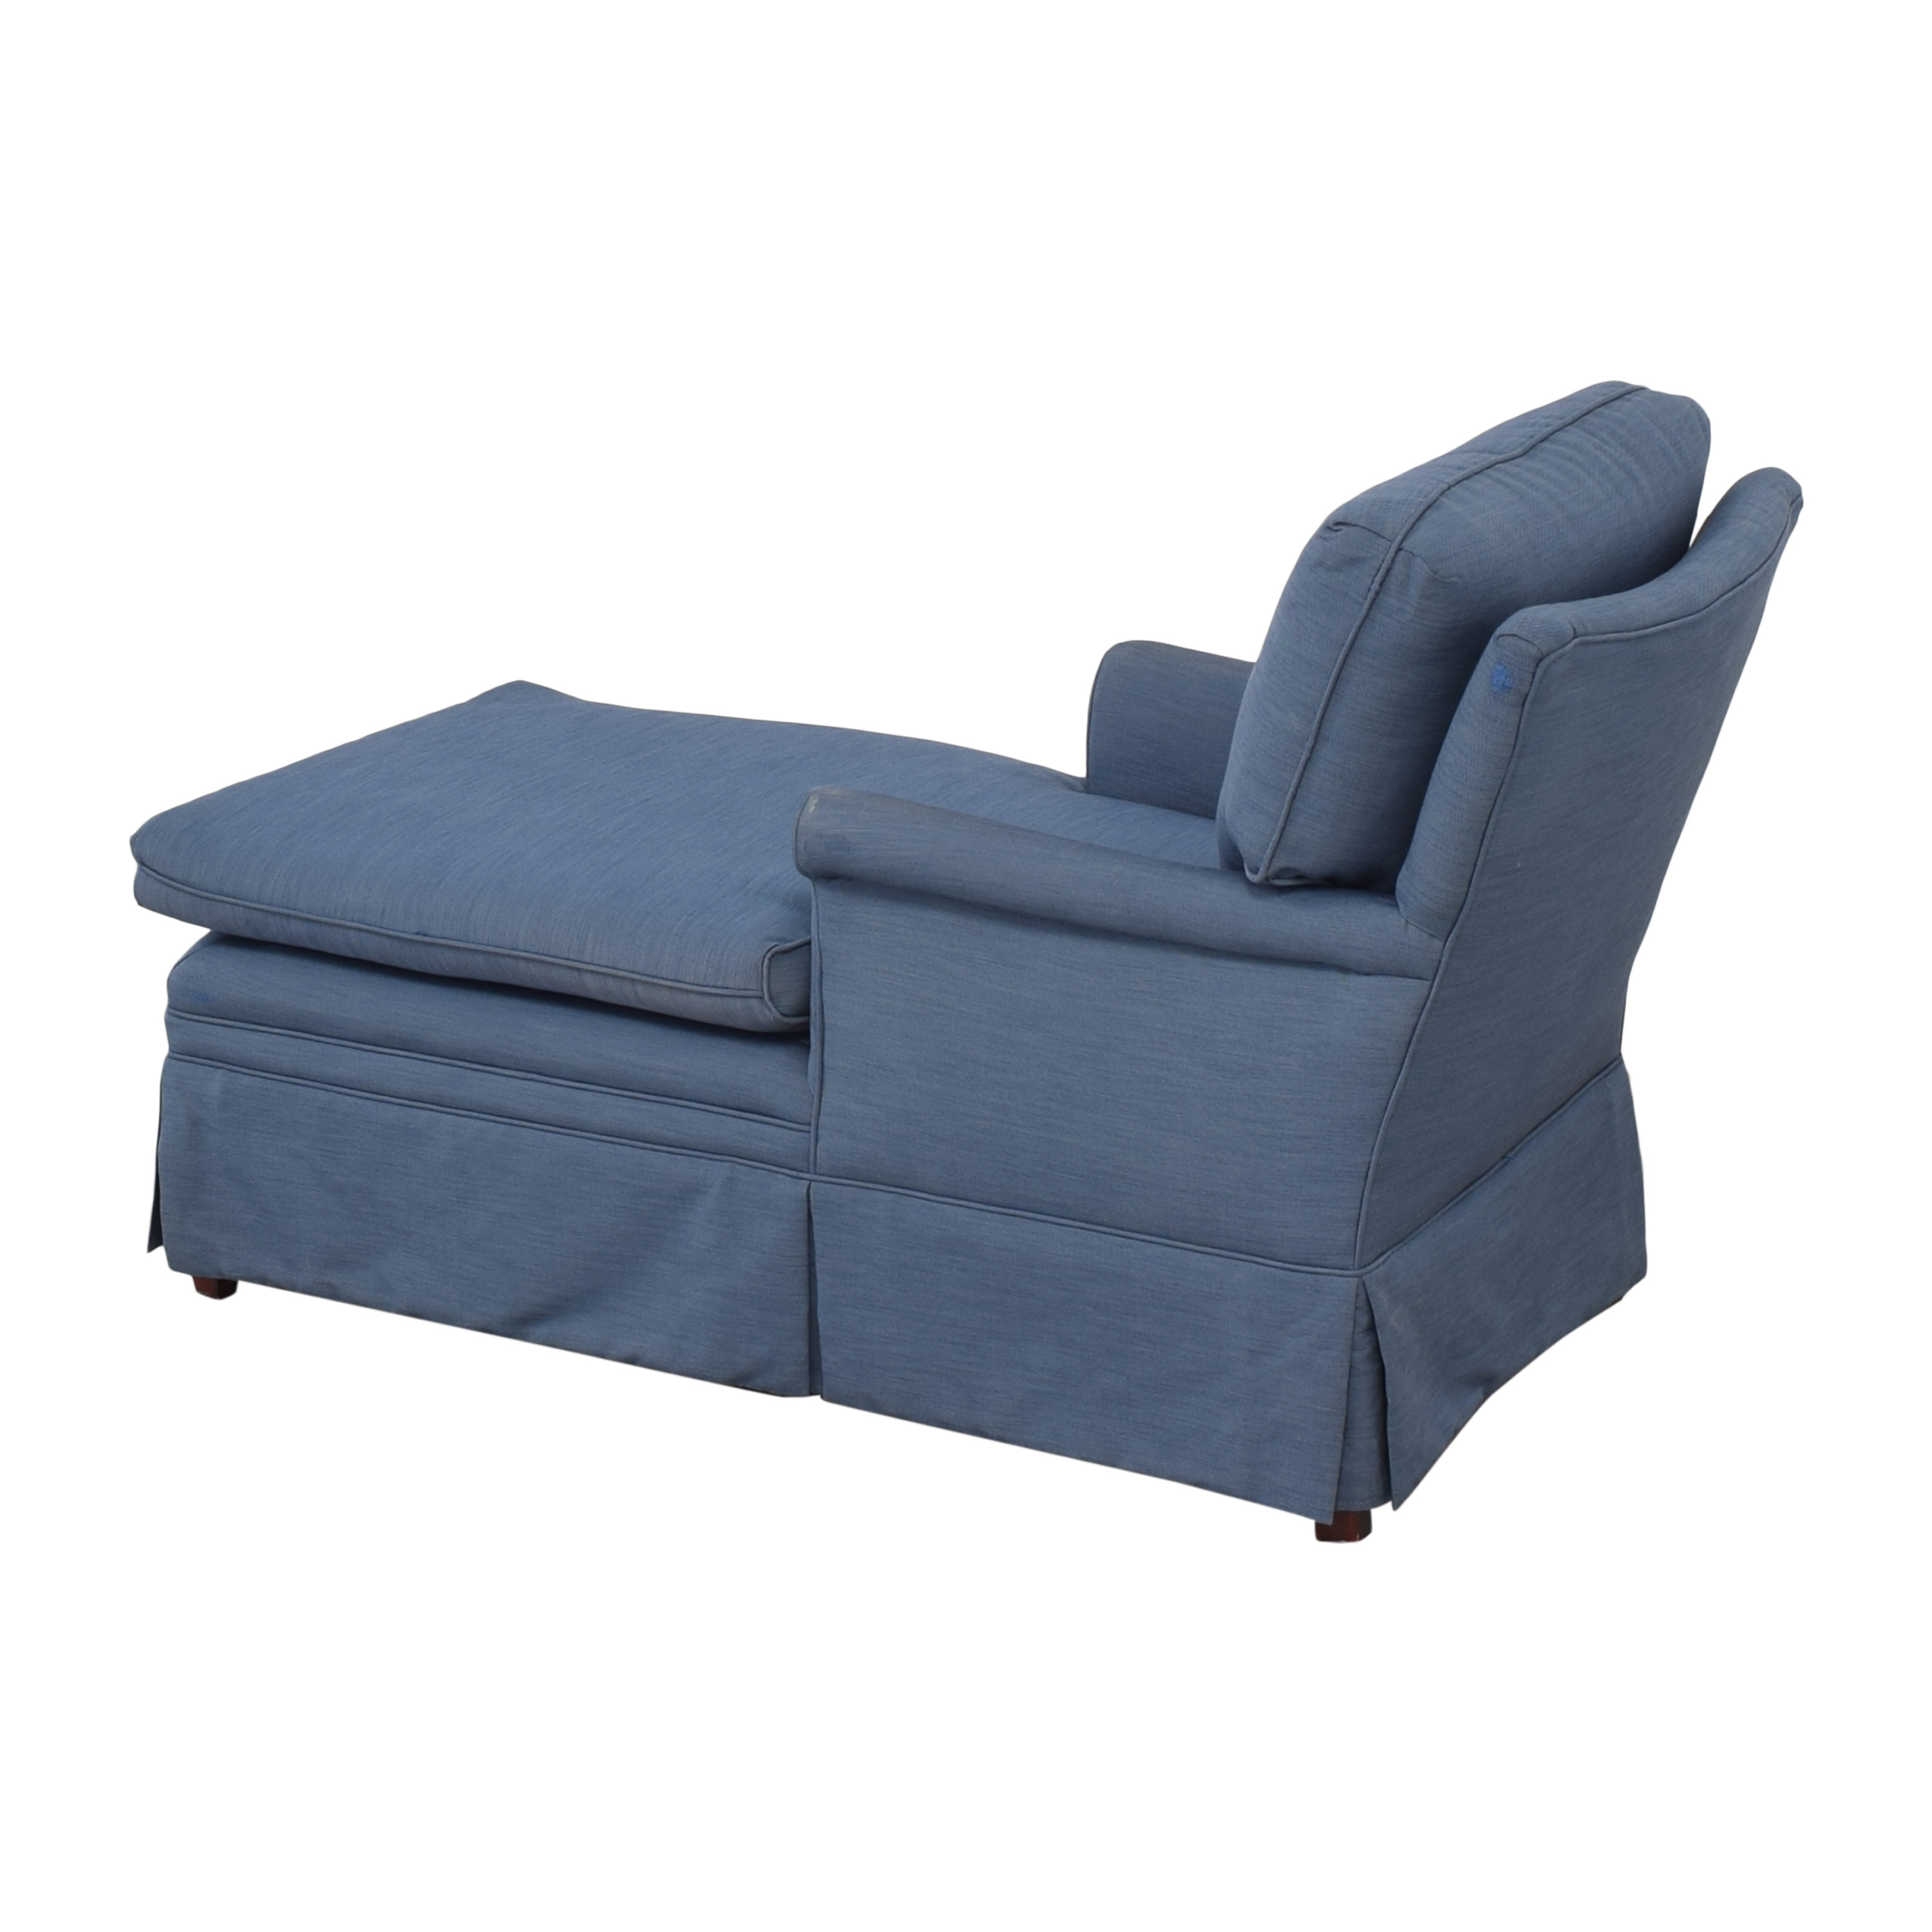 44 Off Skirted Chaise Lounge Chair Sofas